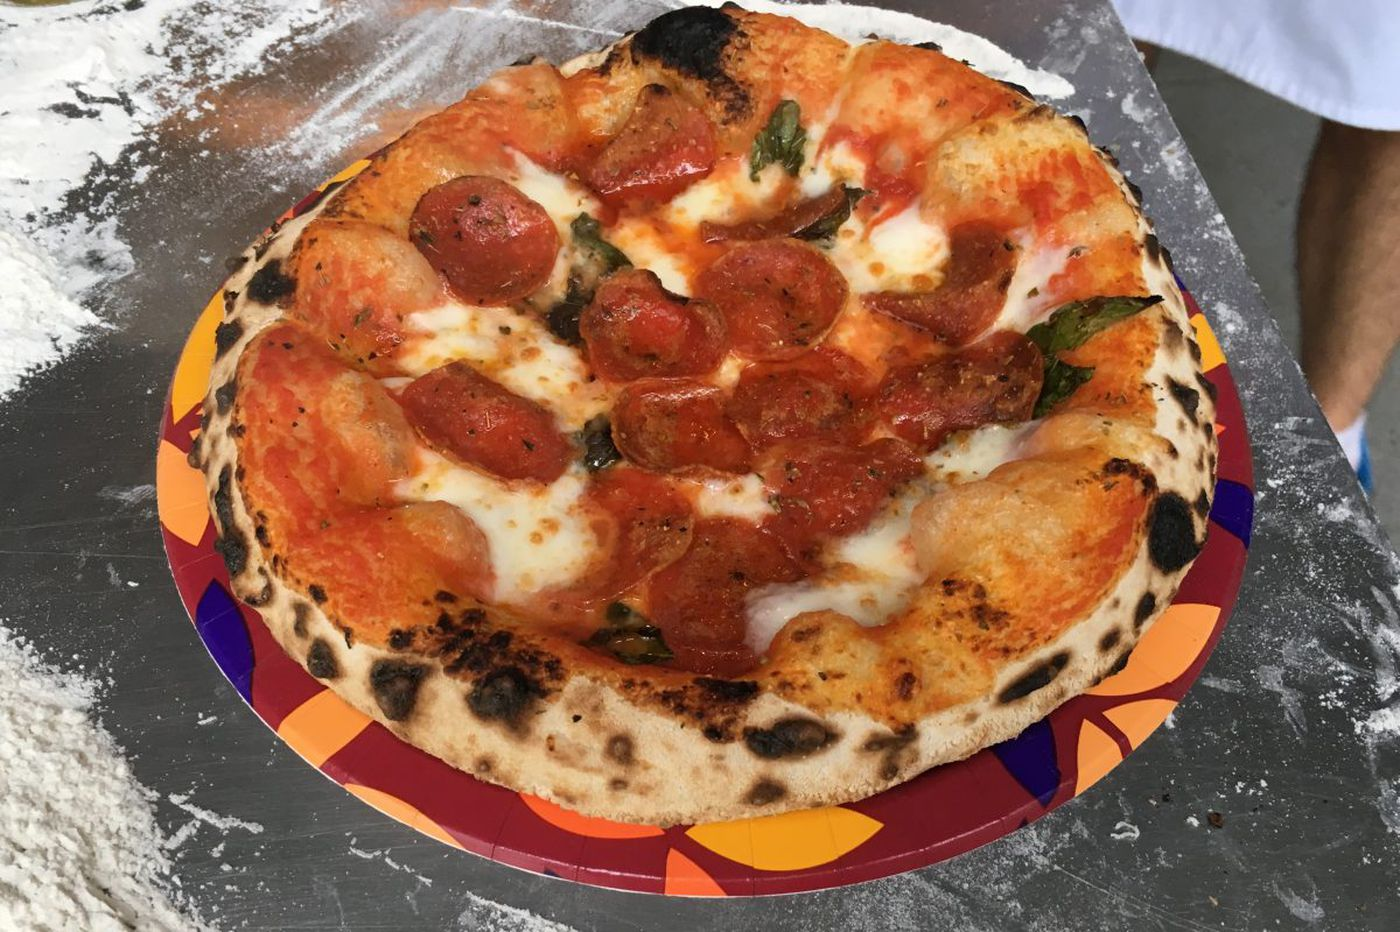 Two tasty pizza pop-ups at the Jersey Shore